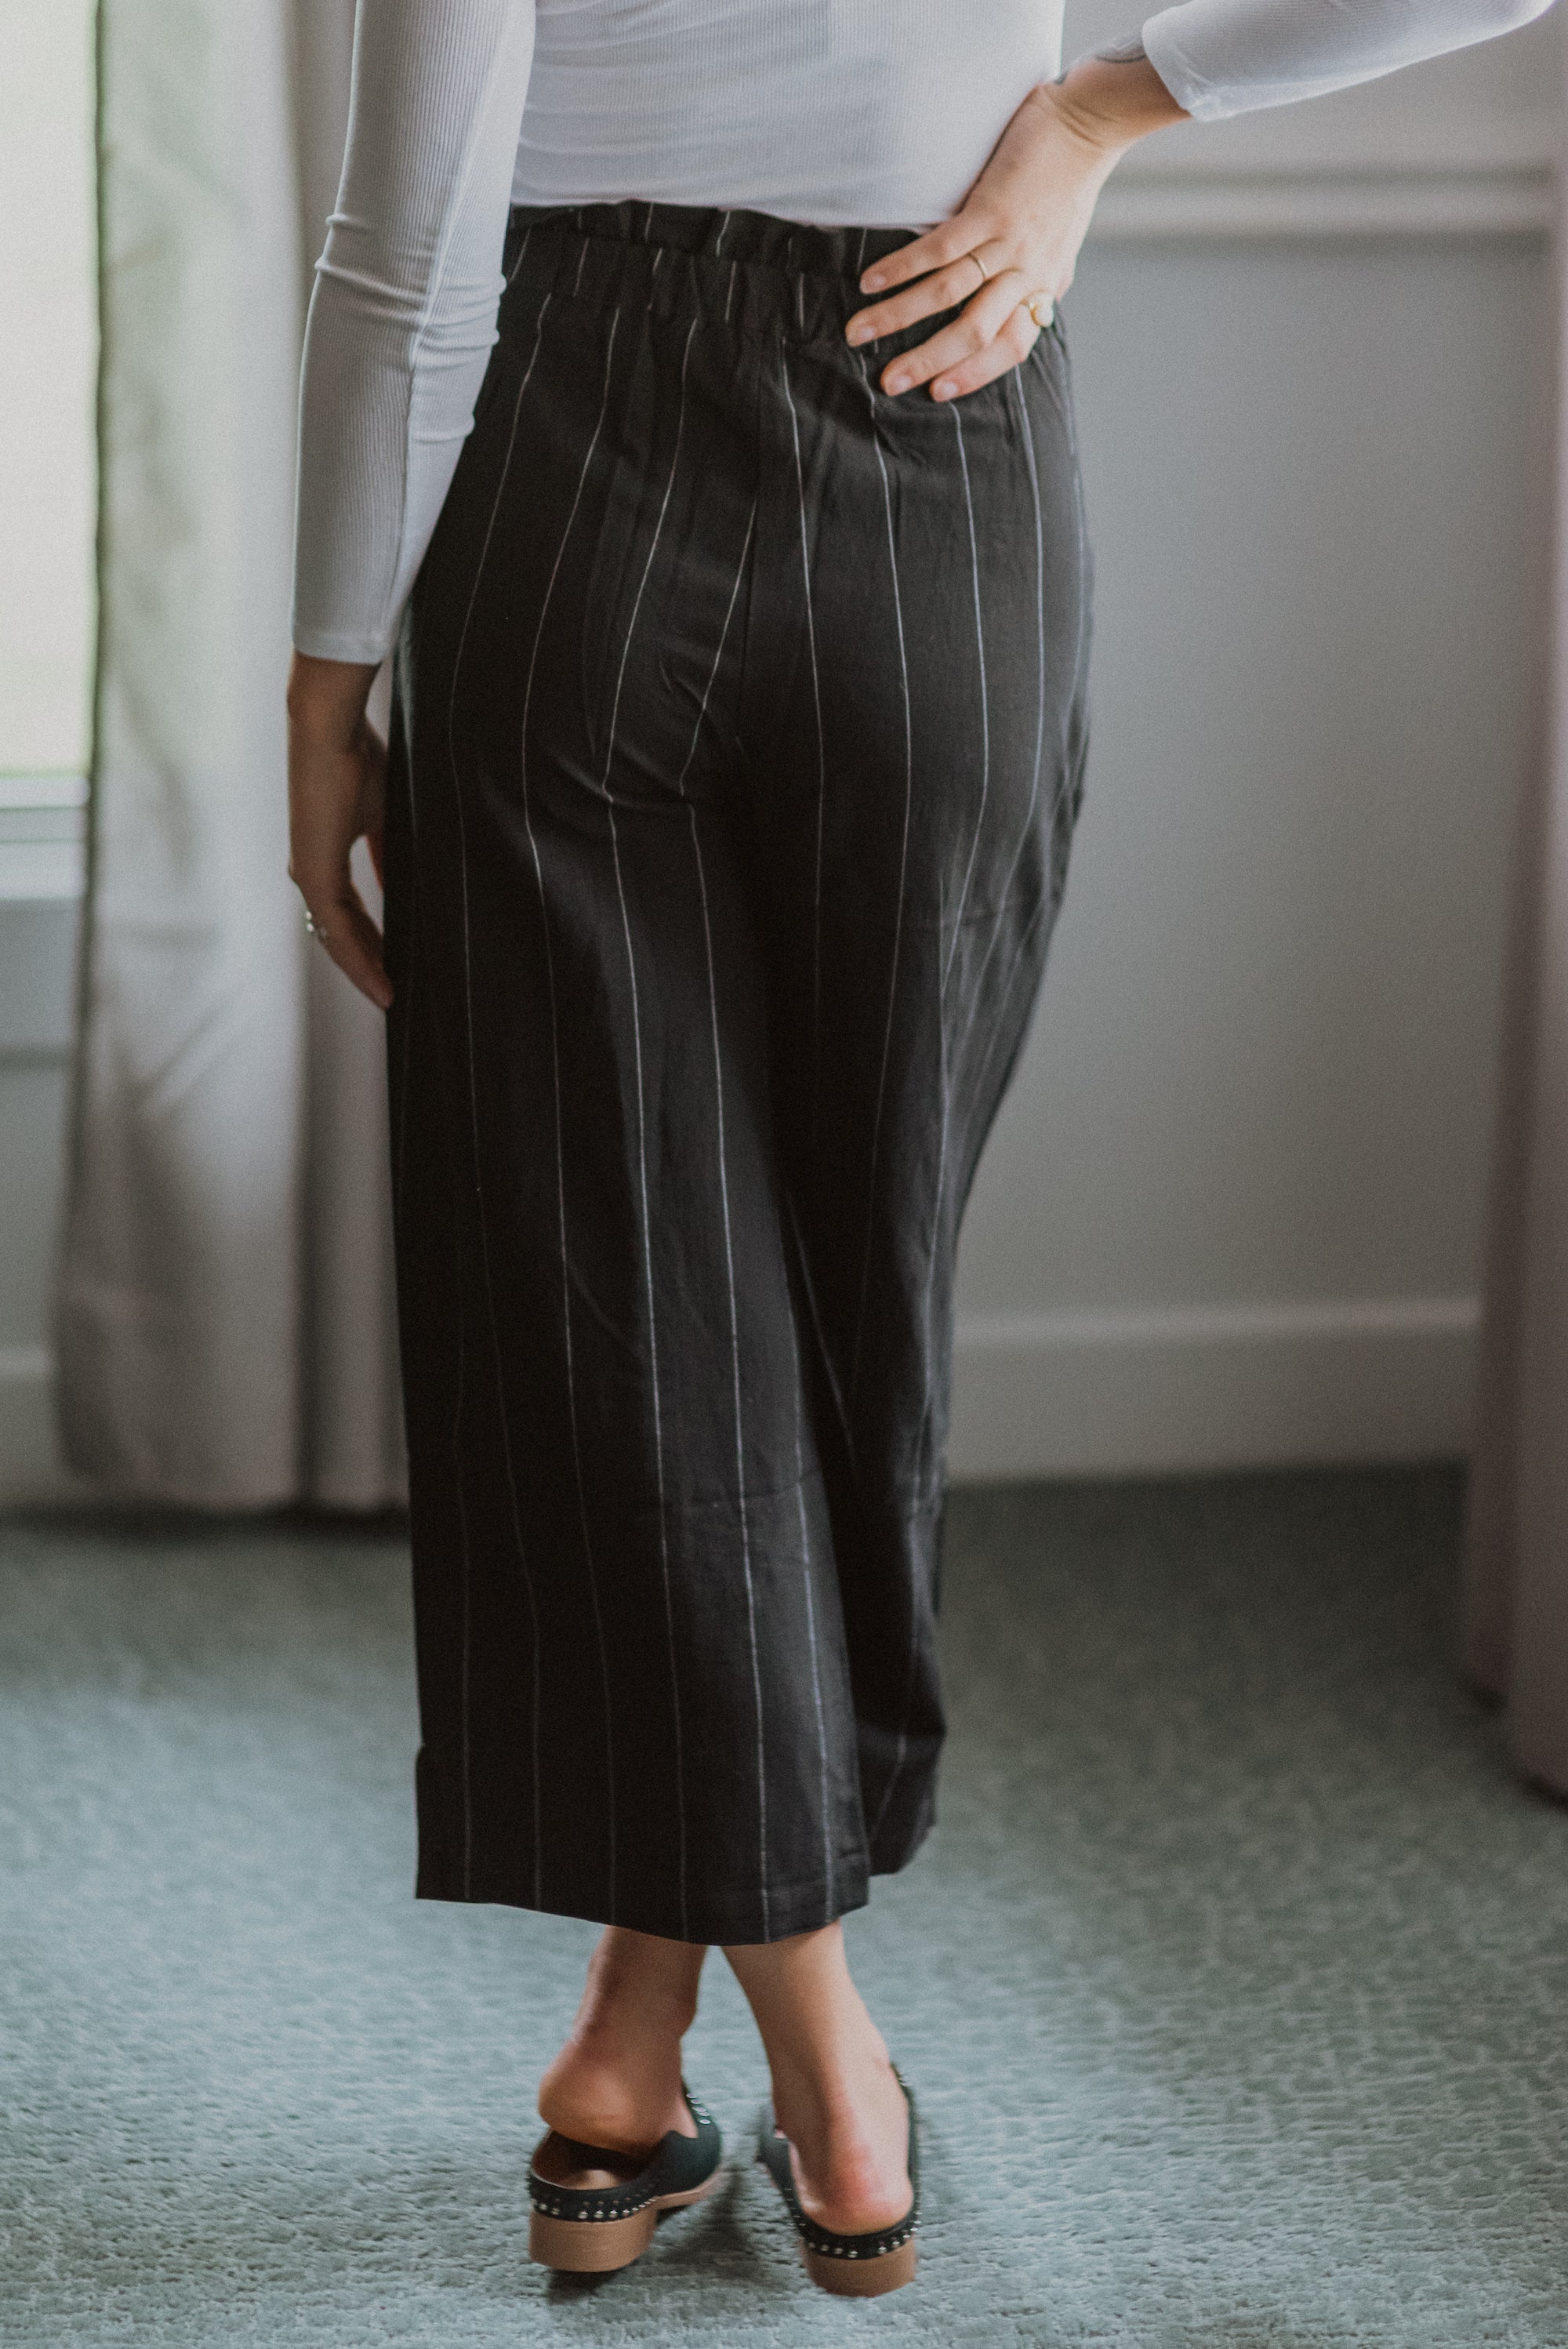 Tie It Up with a Bow Culotte Pin Striped Pants / FINAL SALE